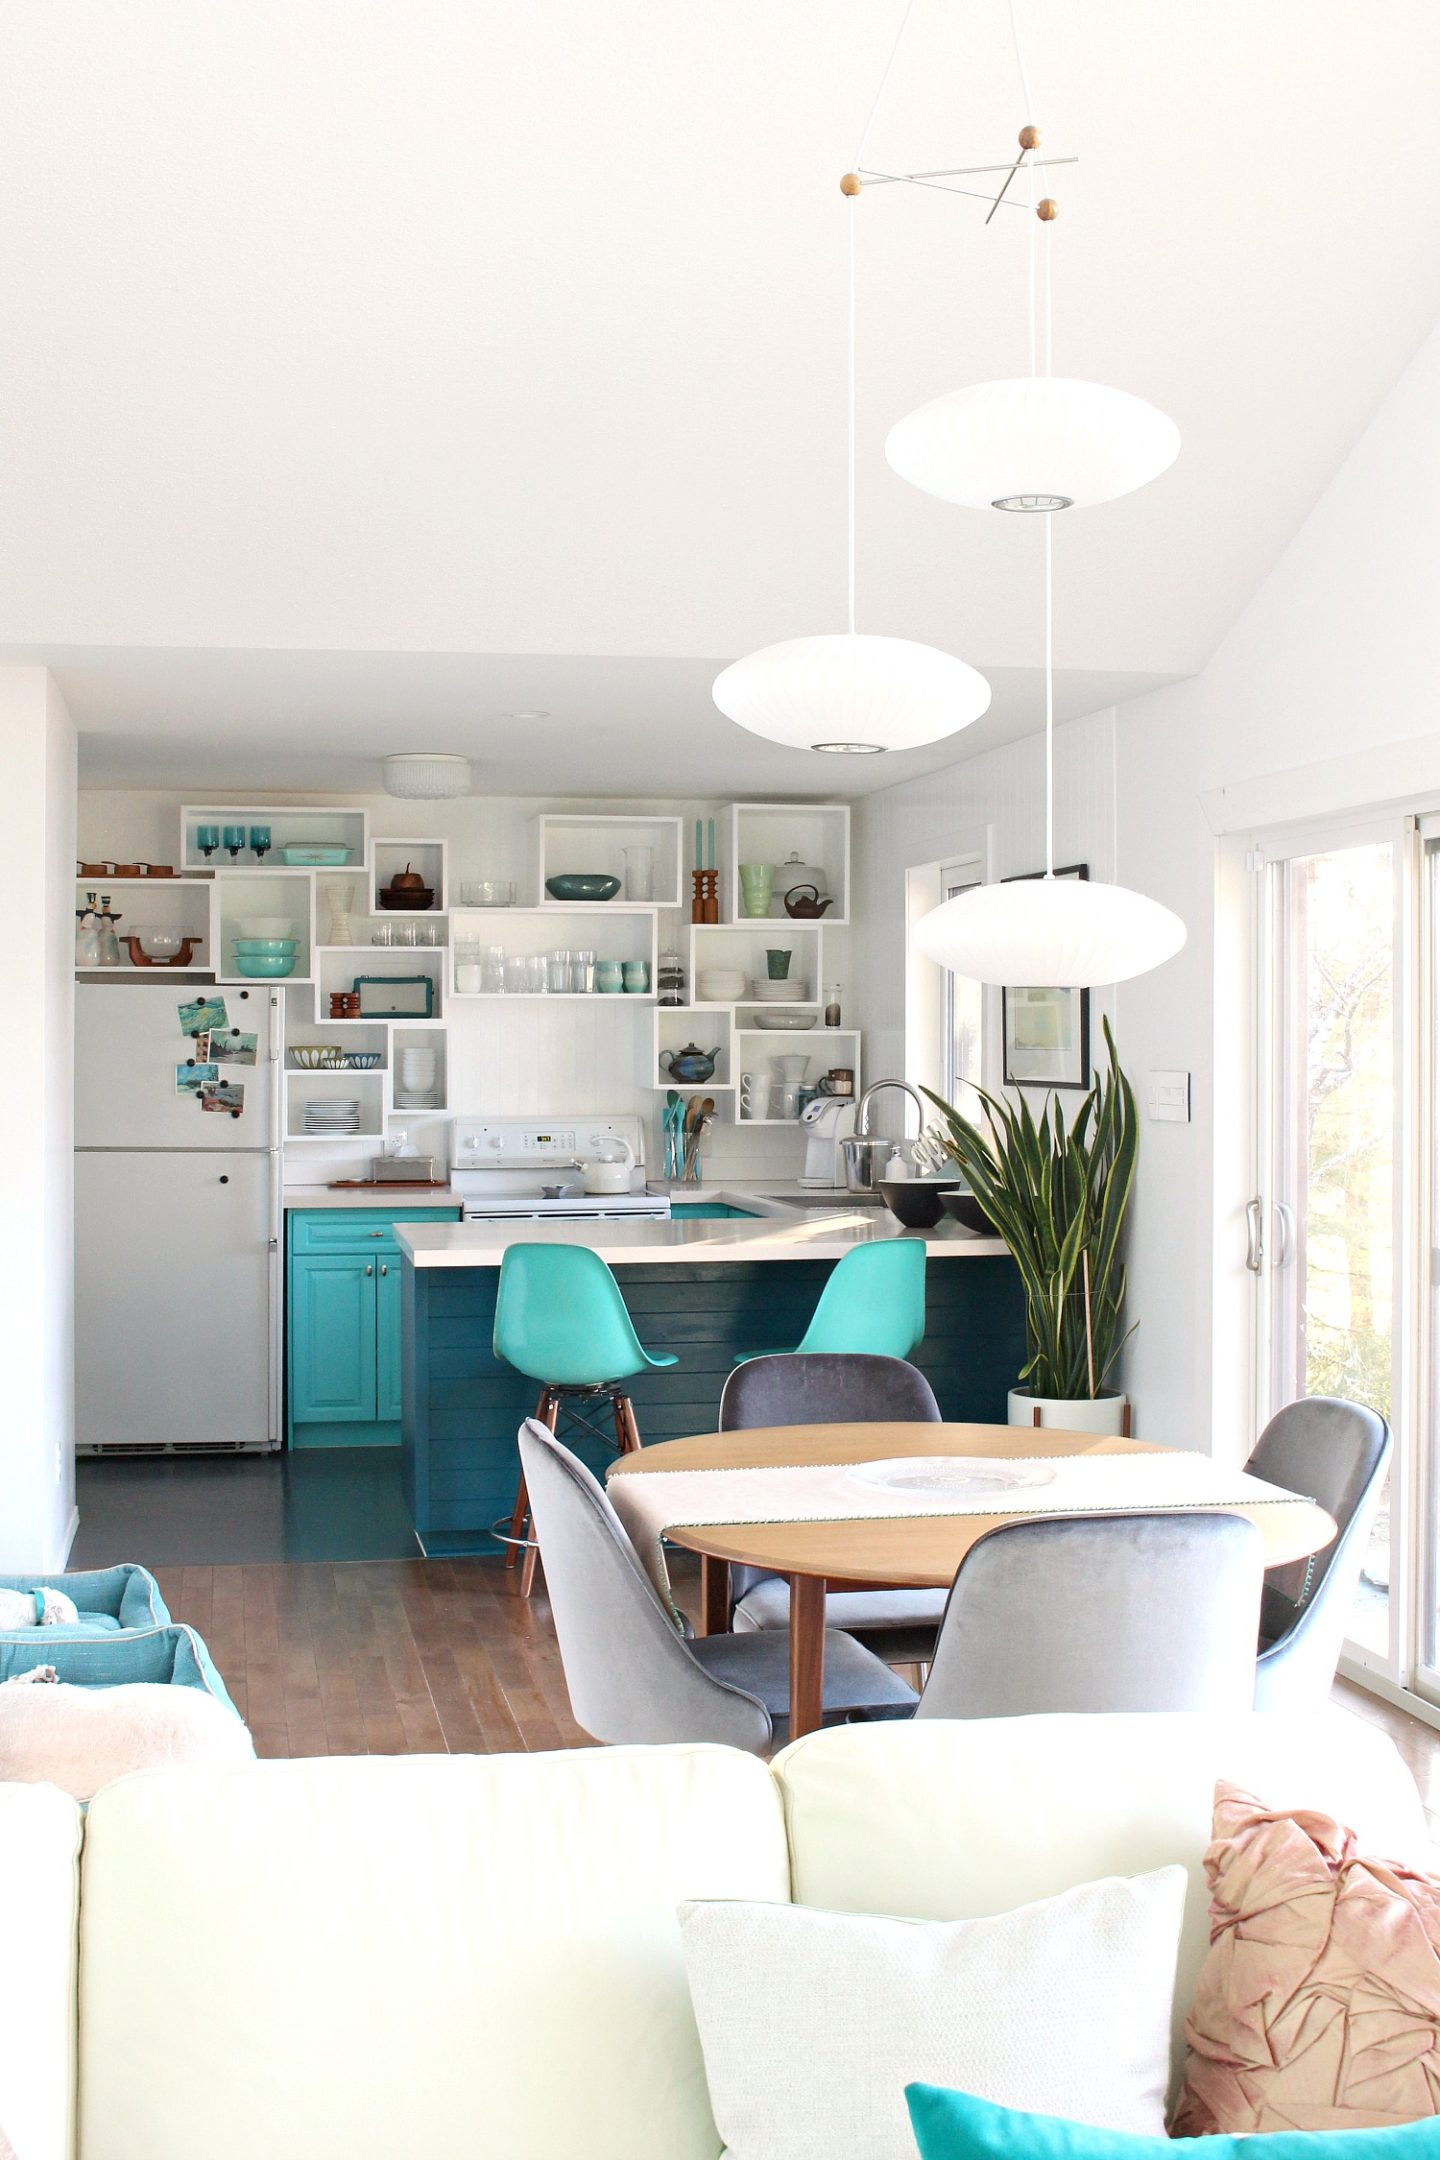 Teal and Turquoise Kitchen Design with Wall Cubbies. Learn How to Build These Wall Cubbies! Easy DIY Storage Cubby Tutorial. #diy #diyprojects #diyhome #budgethomedecor